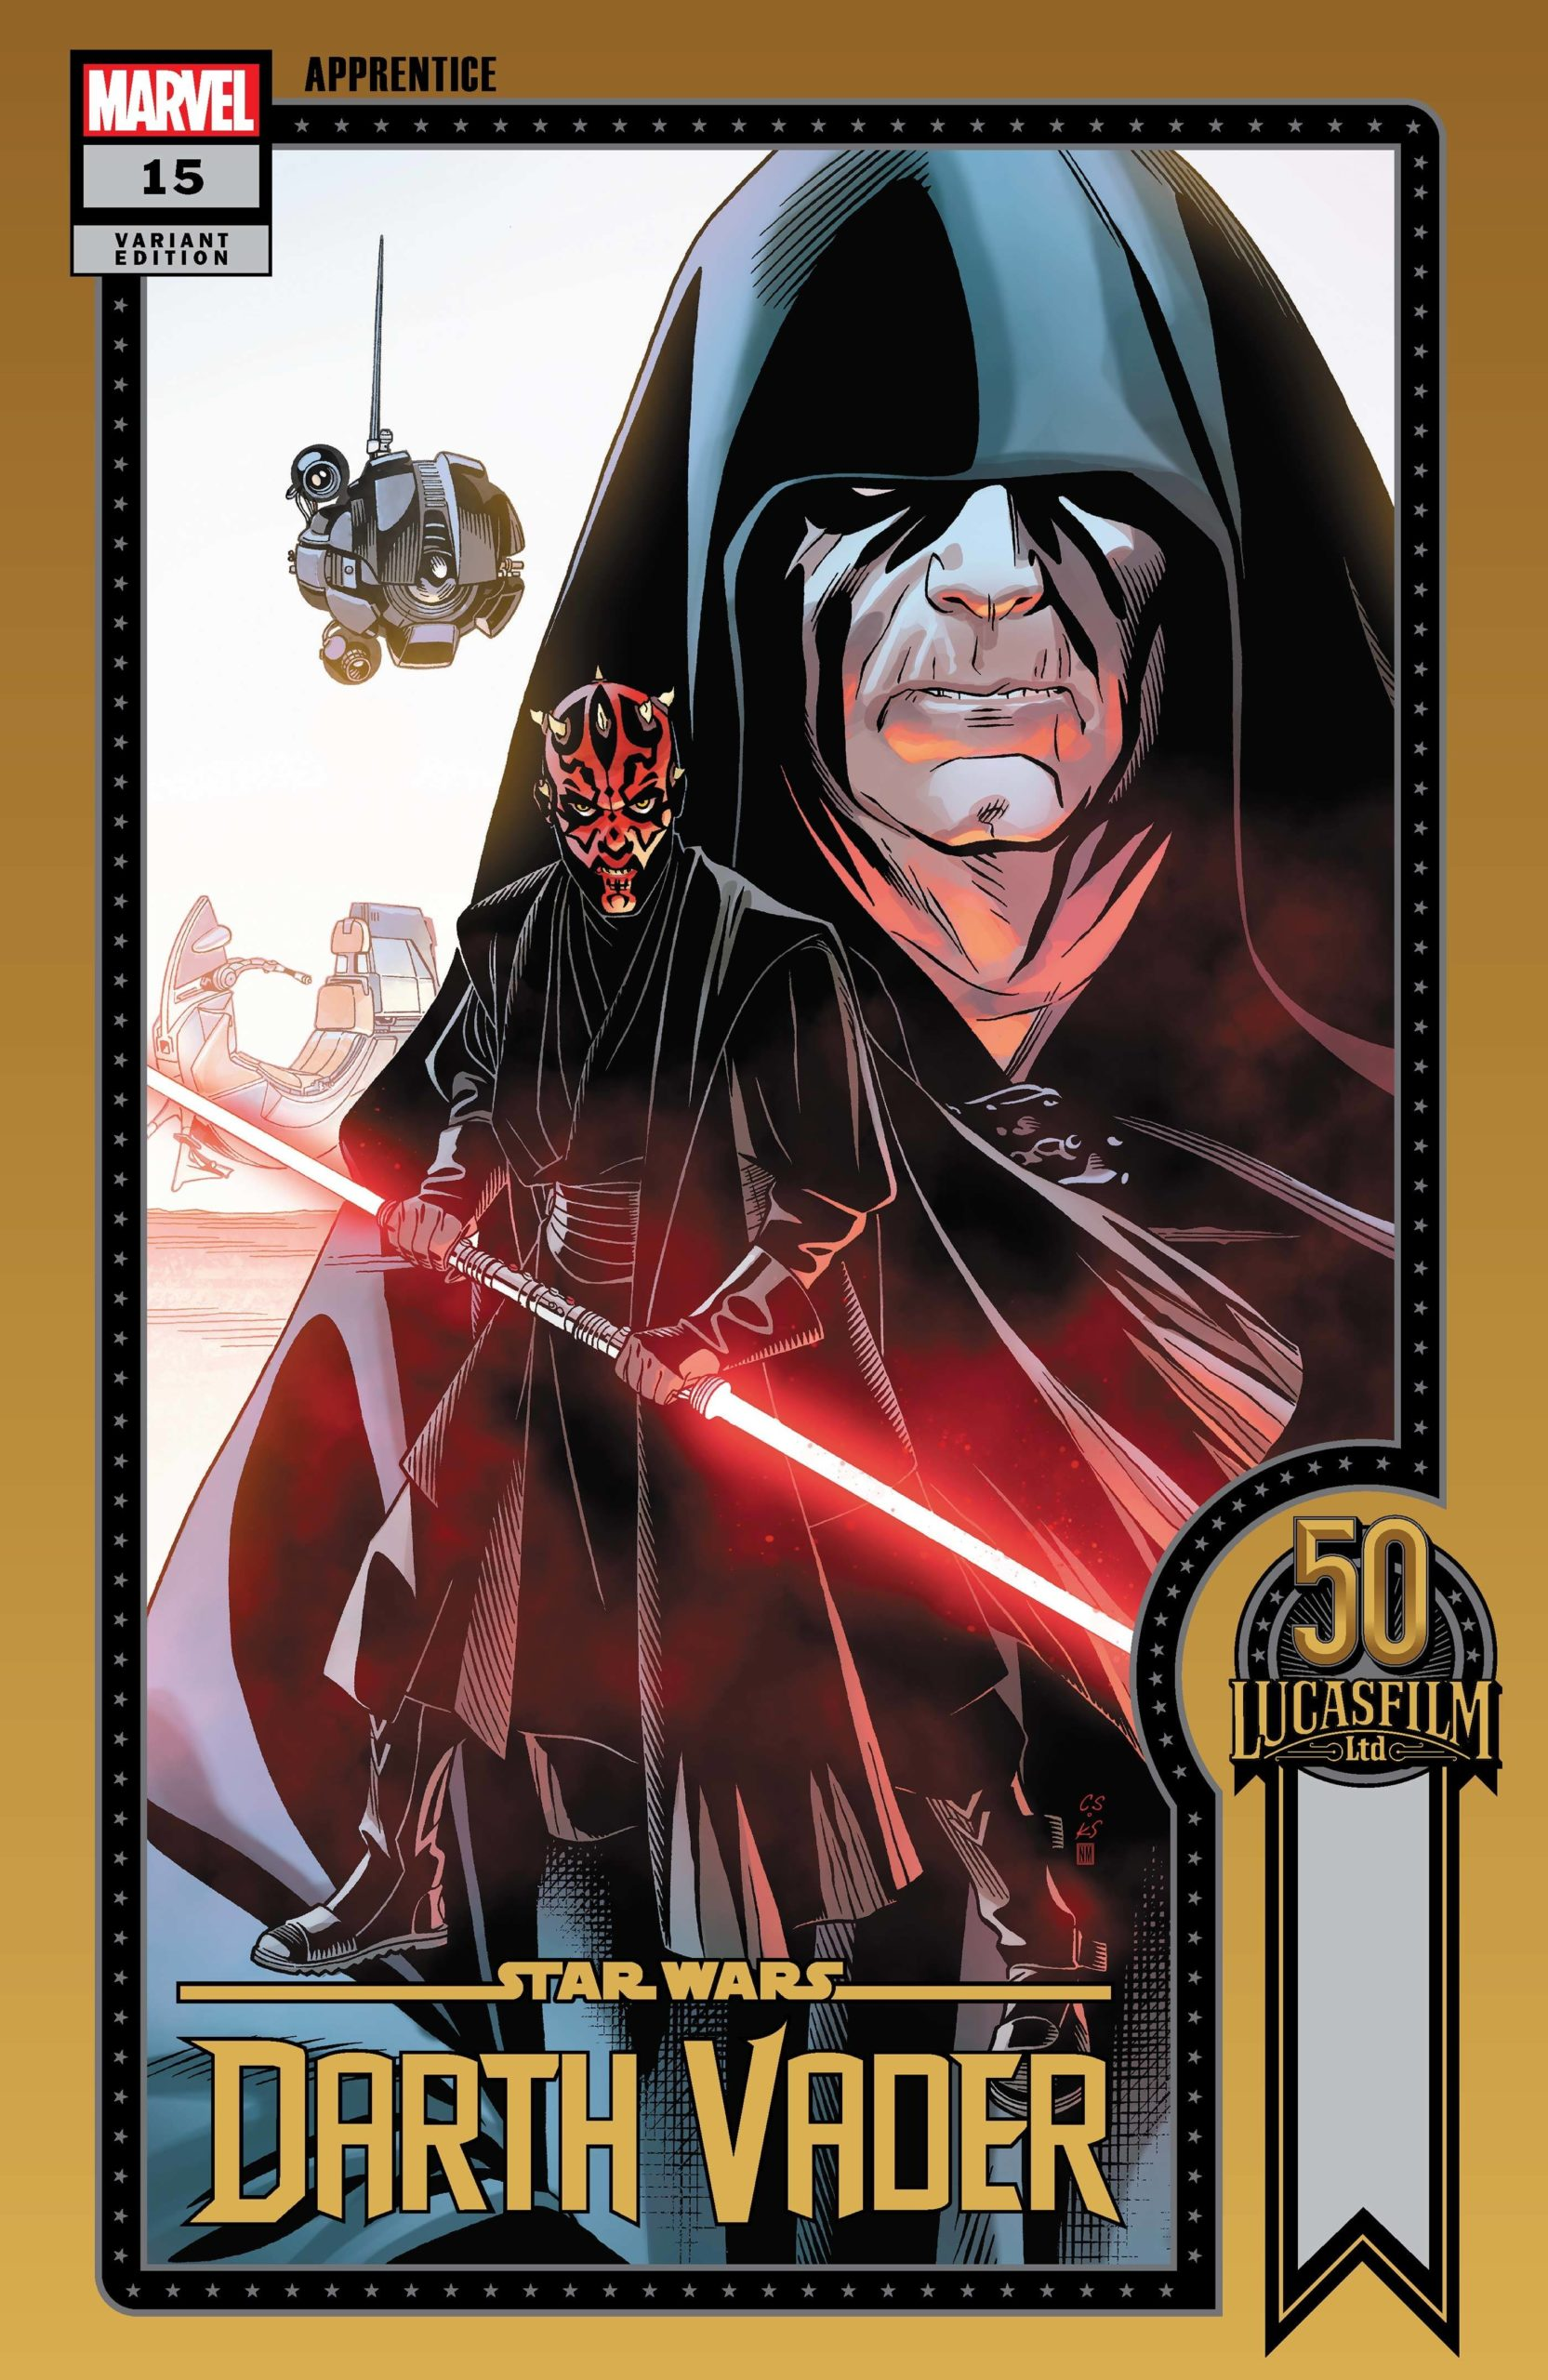 Darth Vader #15 (Chris Sprouse Lucasfilm 50th Anniversary Variant Cover) (25.08.2021)